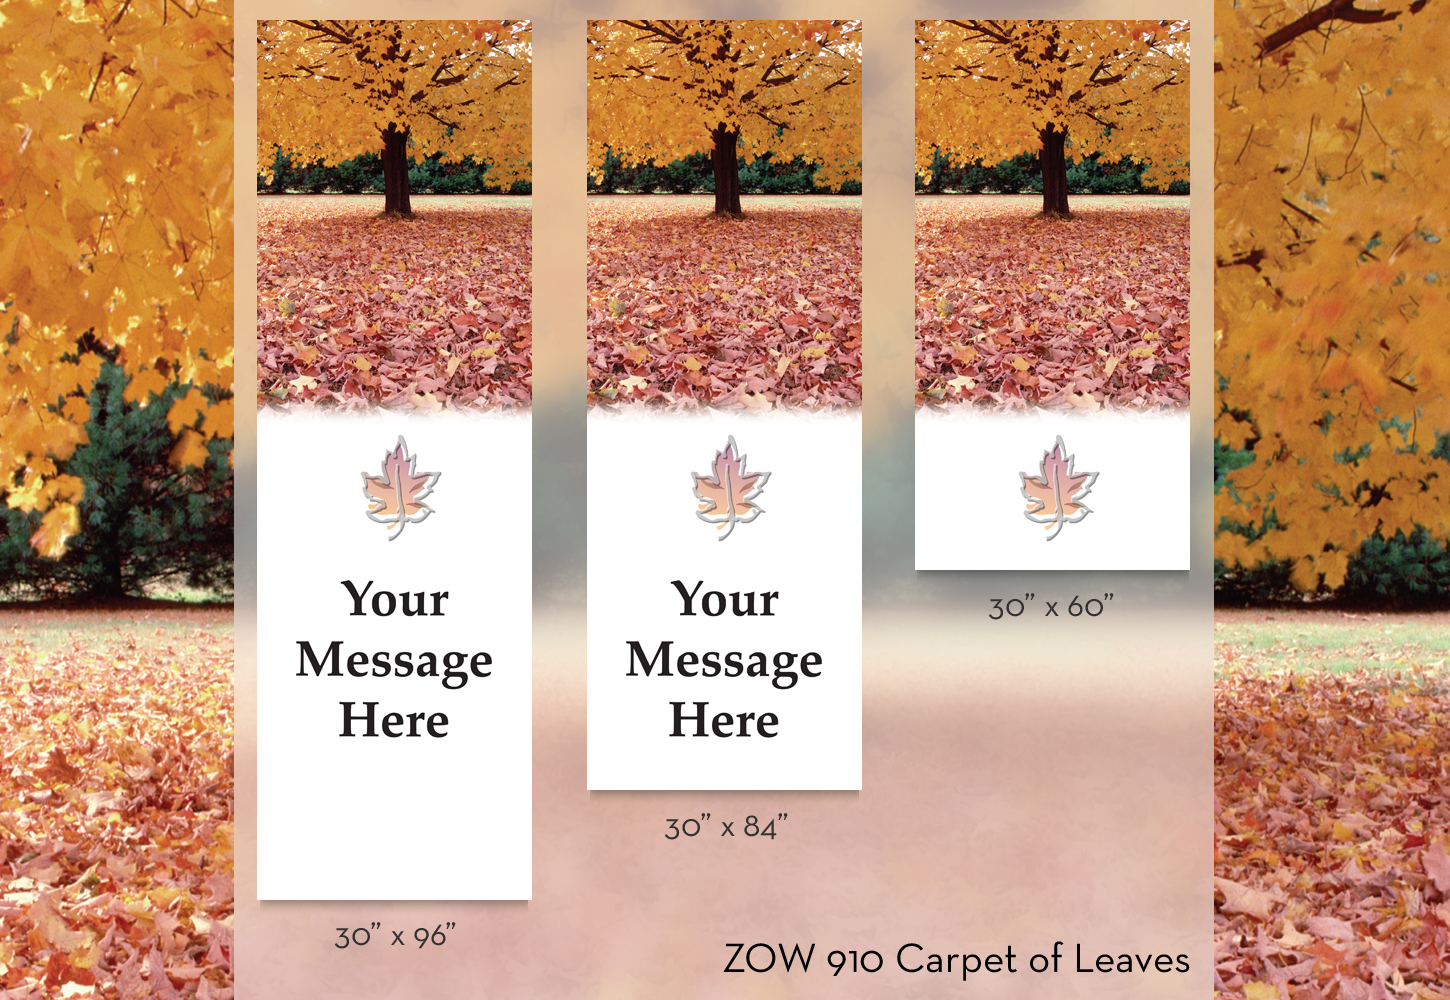 ZOW 910 Carpet of Leaves